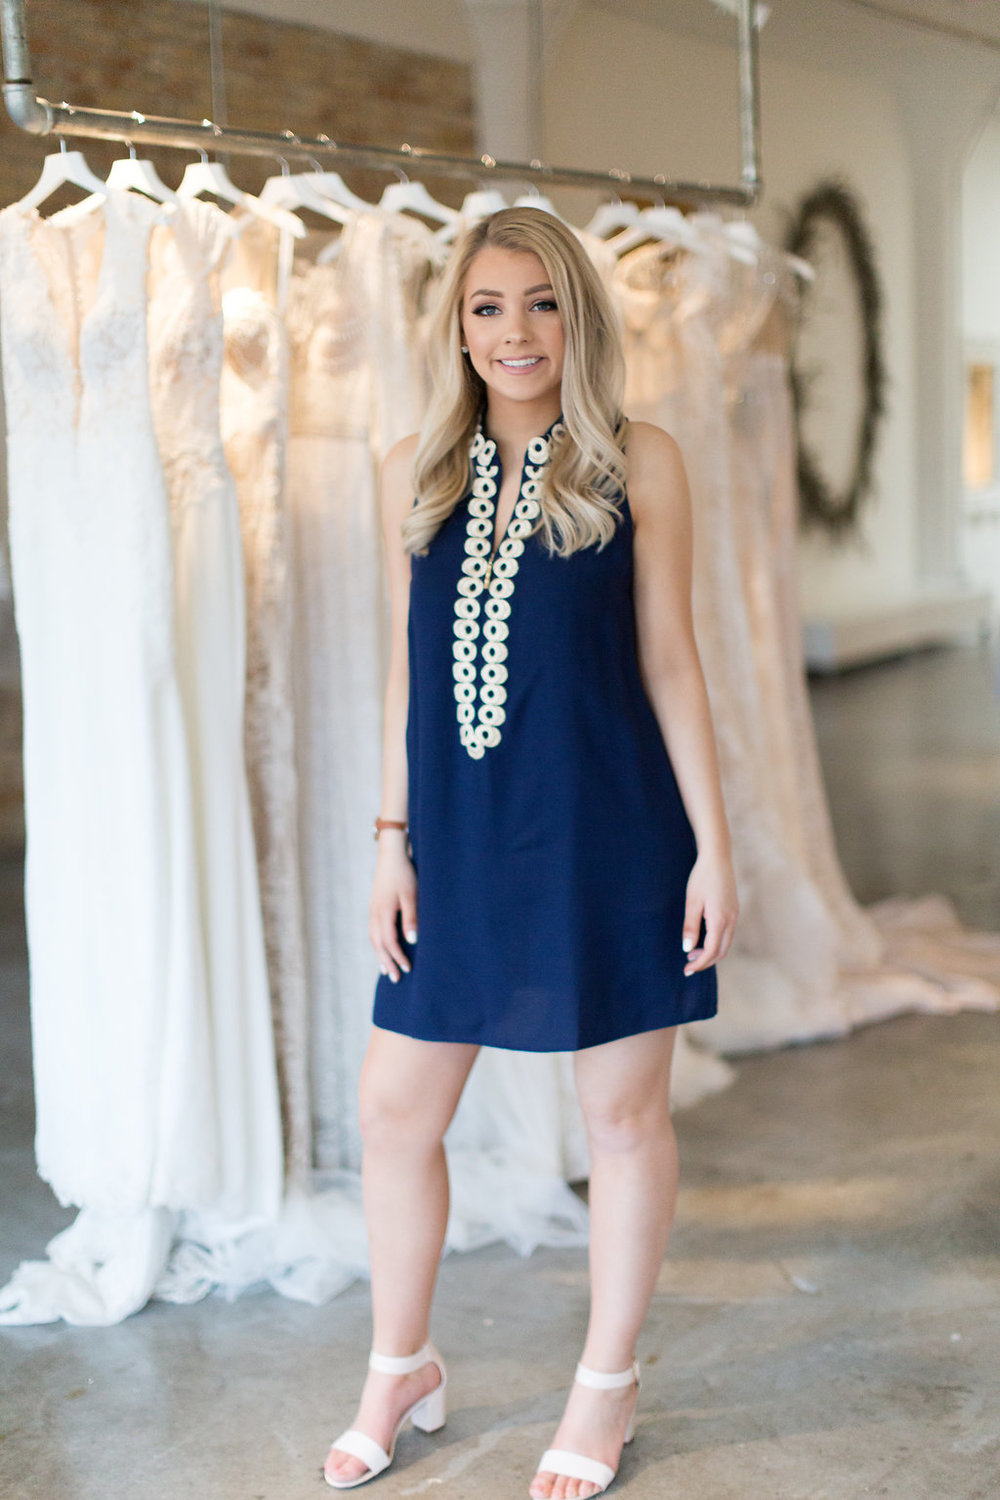 Meet Amanda - If you're here, that probably means you're engaged. Congratulations!Wedding planning can be overwhelming, but that's where I come in. Let me tell you a little about myself.My story meets your storyI have been in the wedding industry for 6 years. I got my start working at Men's Wearhouse where I was able to help couples plan their wedding attire. This was where I fell in love with this industry.I've come a long way since then: Planning weddings in Minneapolis, Minnesota, and now working in Eastern Iowa for amazing couples! I've always been a sucker for a good romance novel, and maybe that's where my passion for weddings comes from. My mission is to do anything and everything I can to create beautiful weddings that showcase your individual love story!I'm an early bird, so let's meet for breakfast and chat about how to bring your story to life!